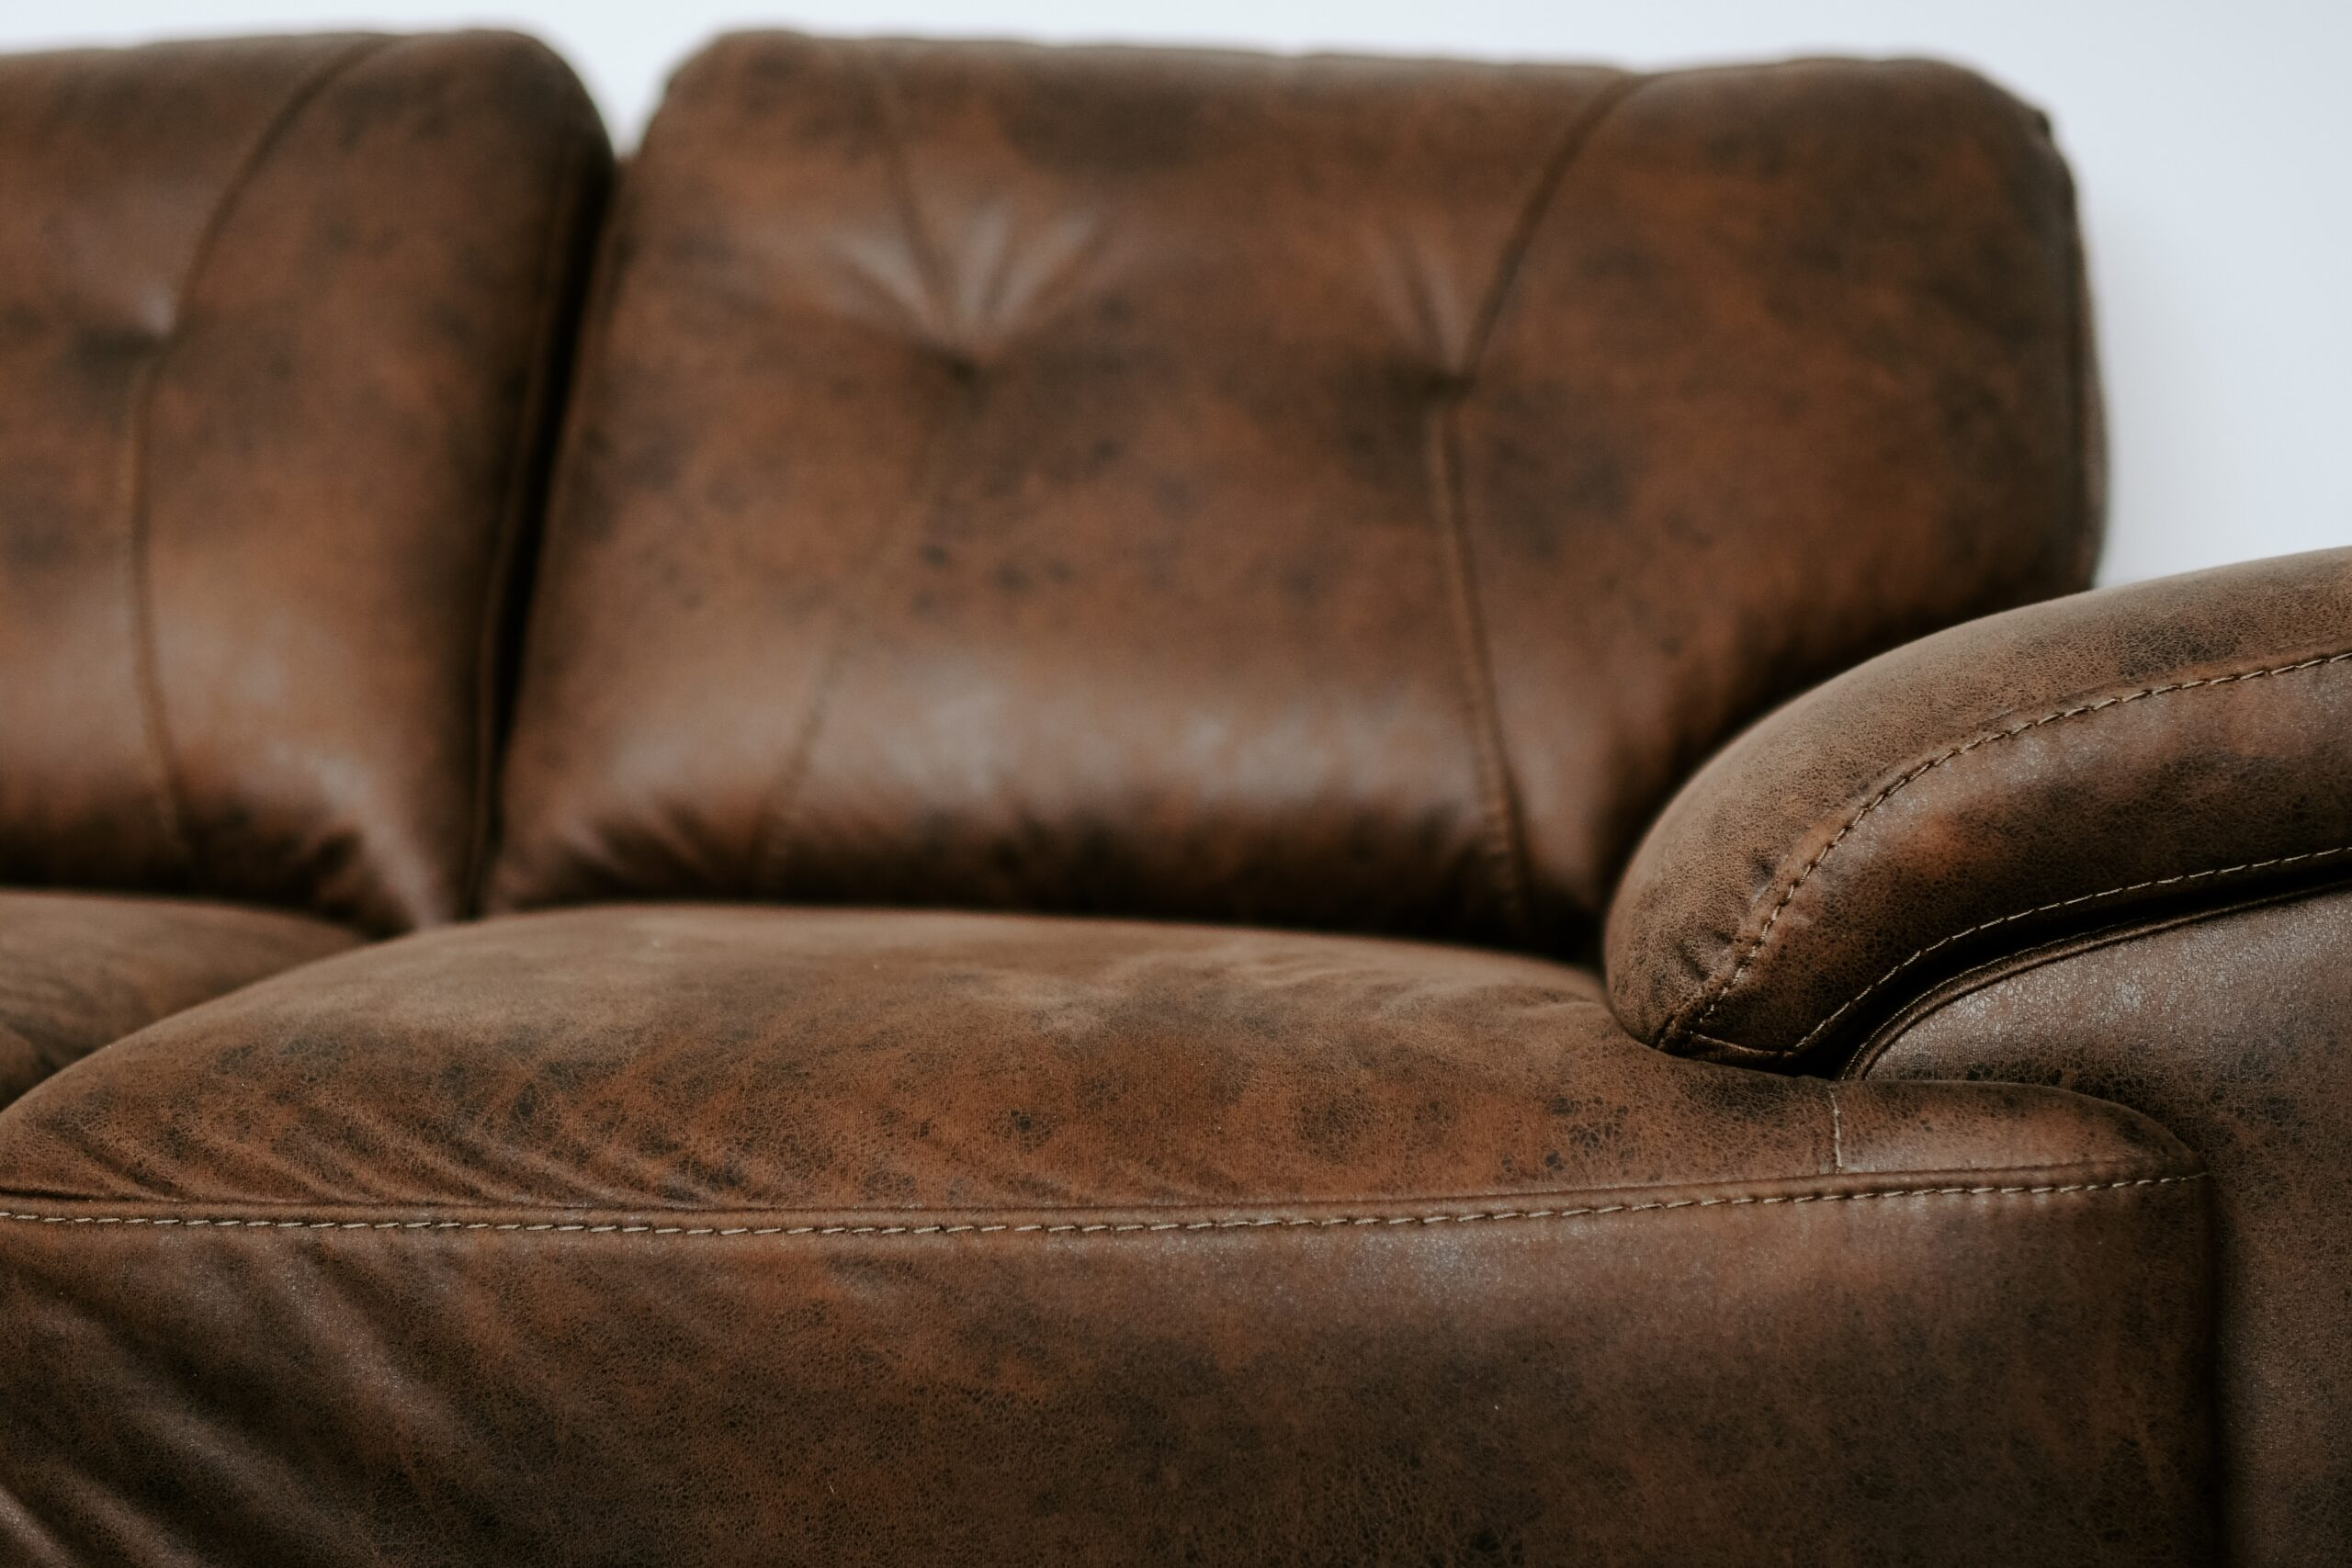 Leather Cleaning Service Near Me